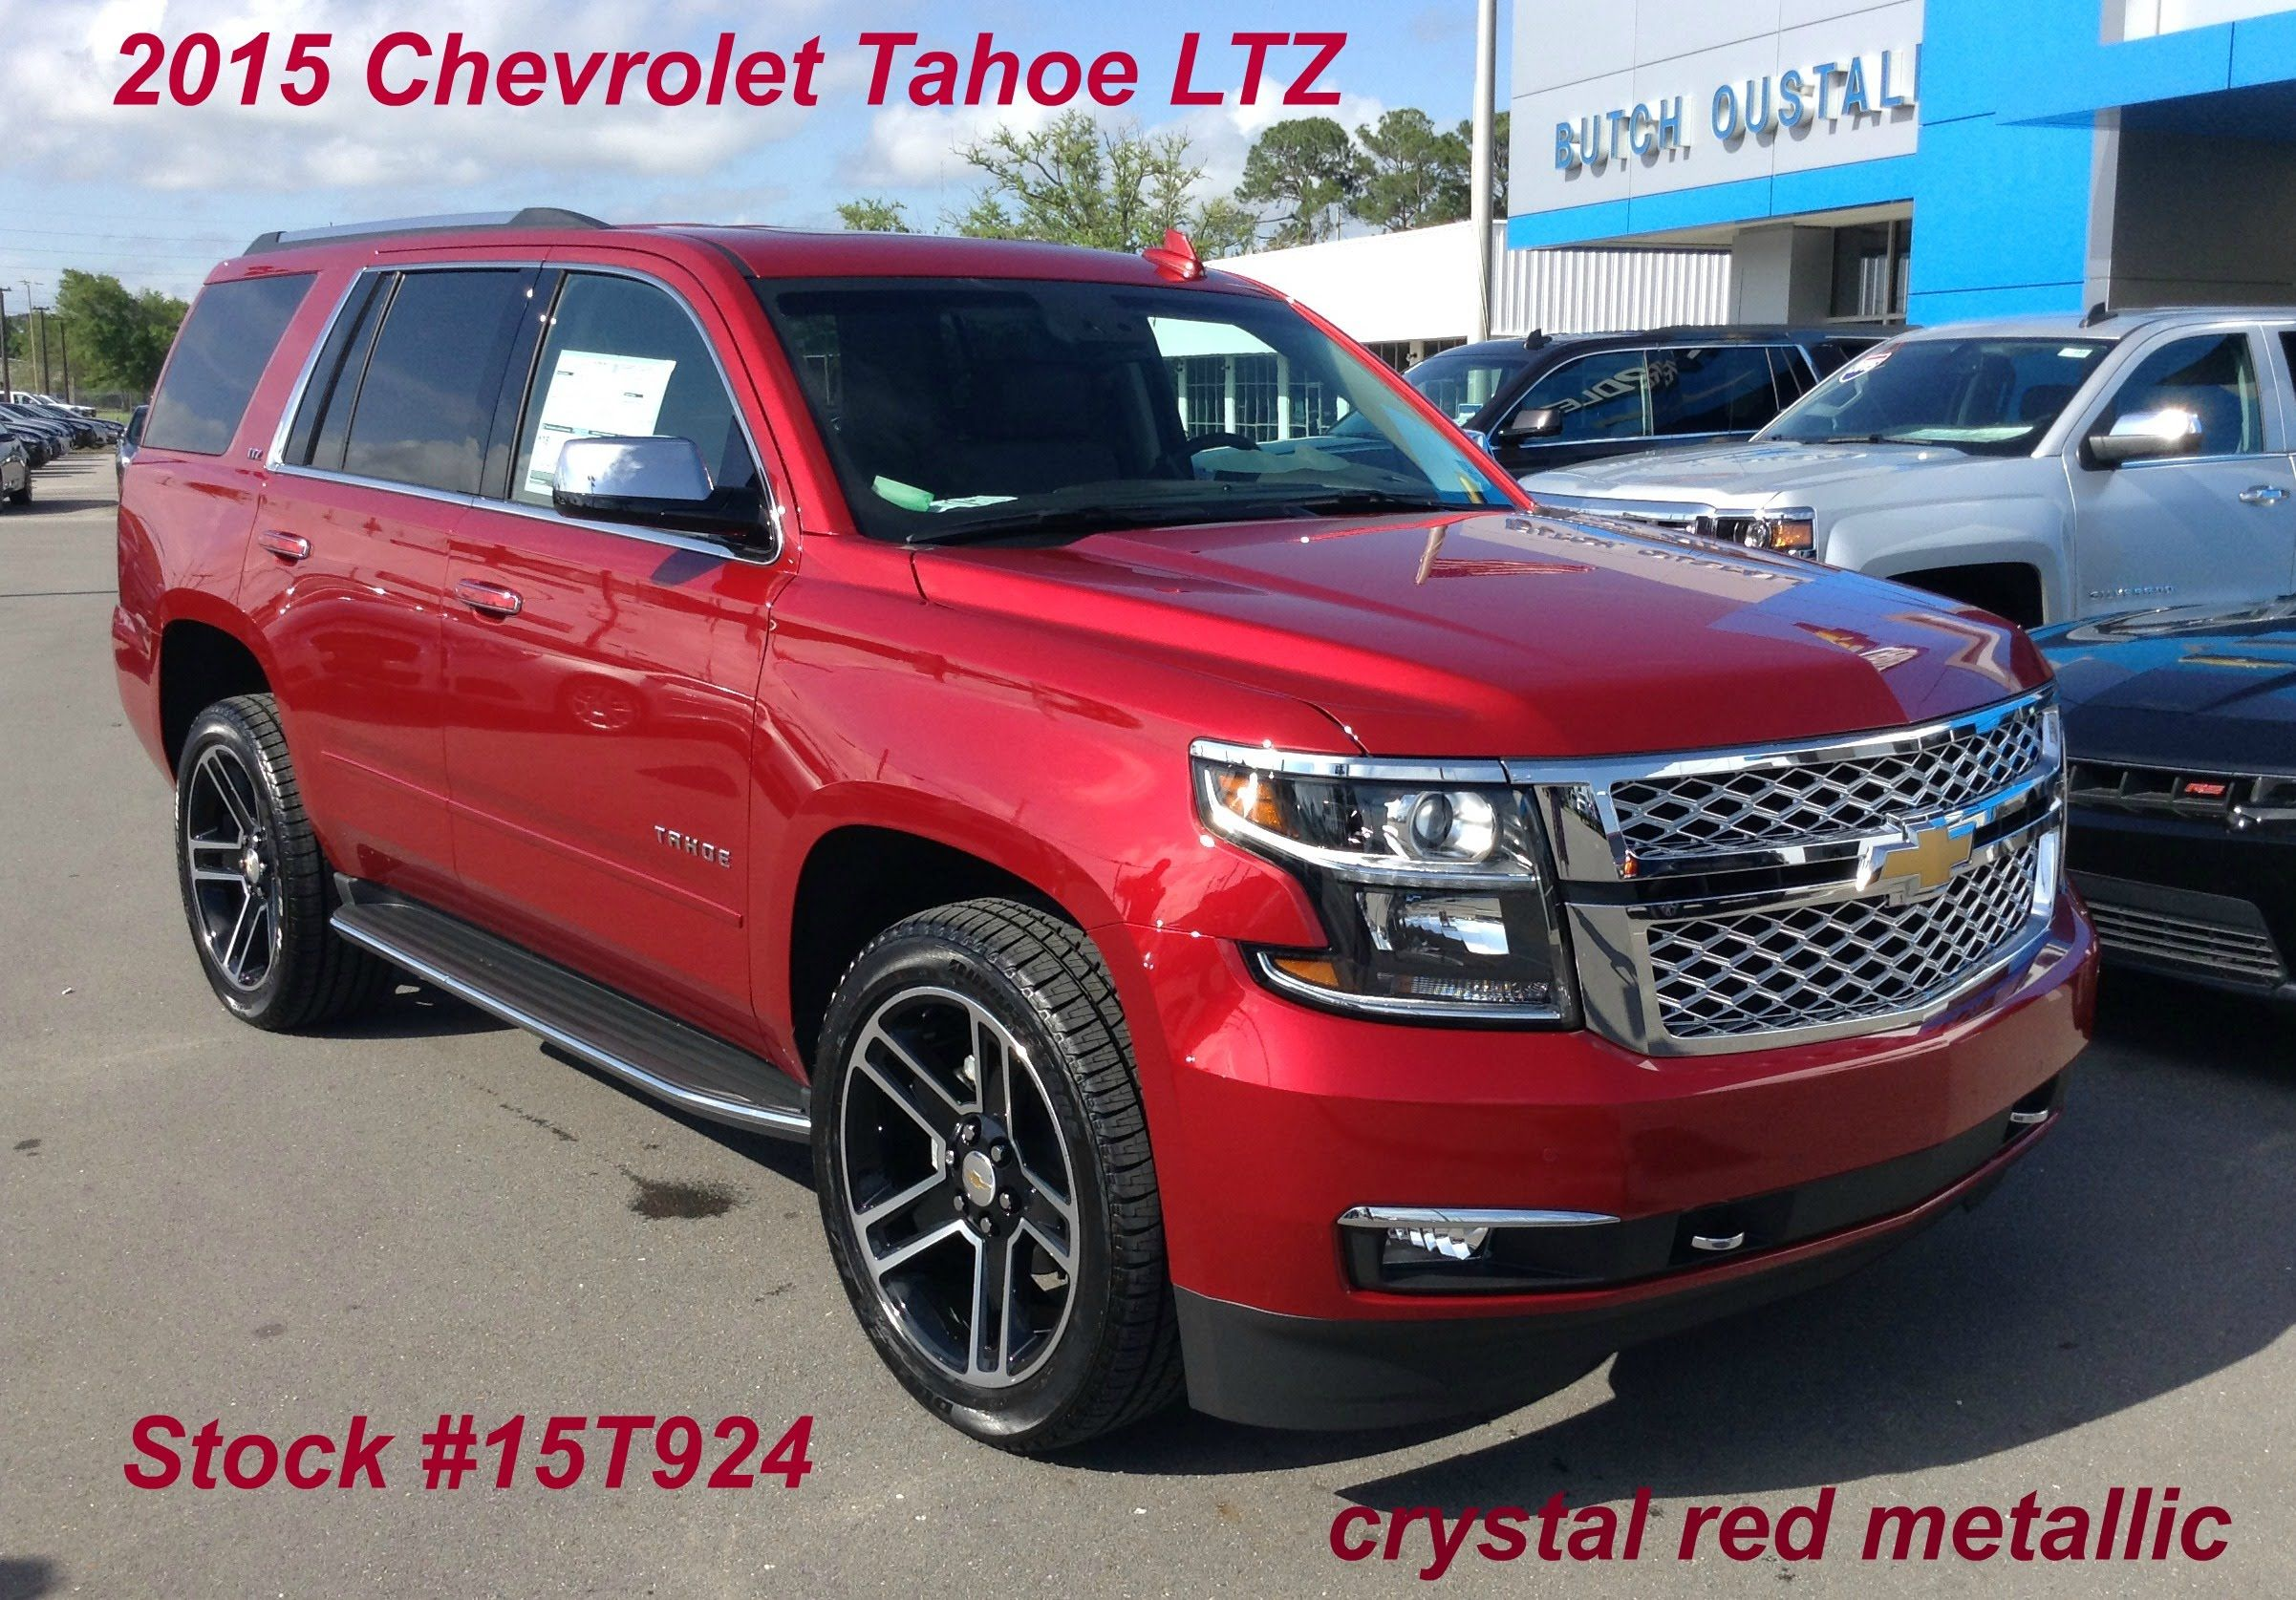 2015 Chevrolet Tahoe Ltz In Crystal Red Metallic Stock 15t924 2008 Chevy Silverado Chevy Tahoe Car